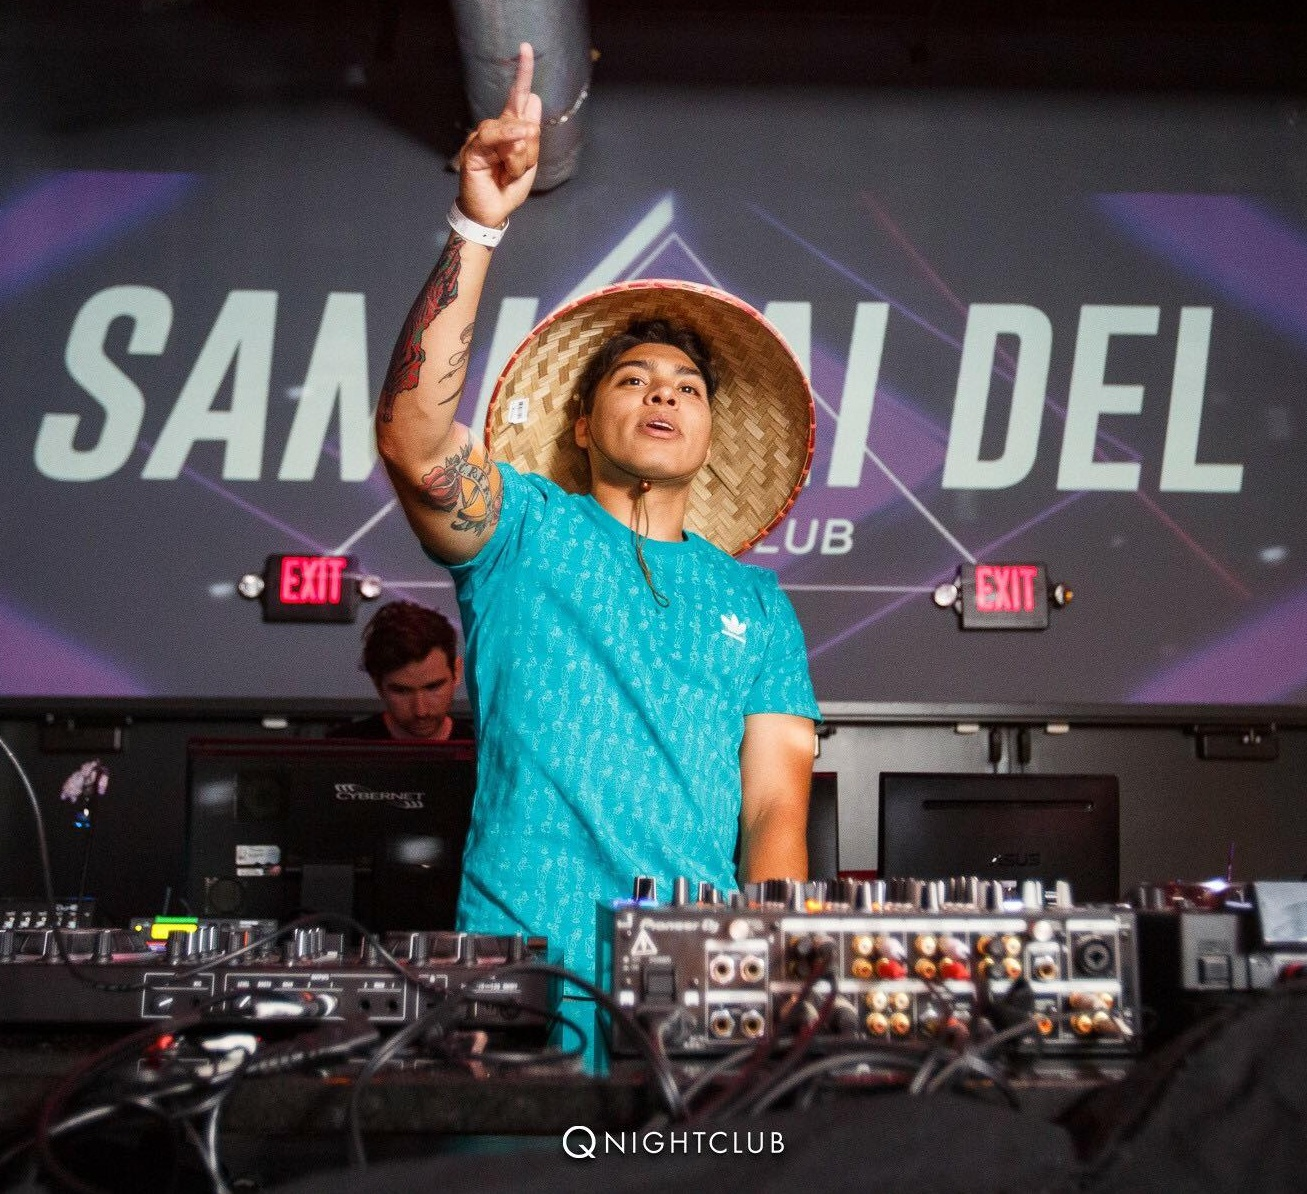 Samurai Del performing at Q Nightclub. Photo by Jason Woo.